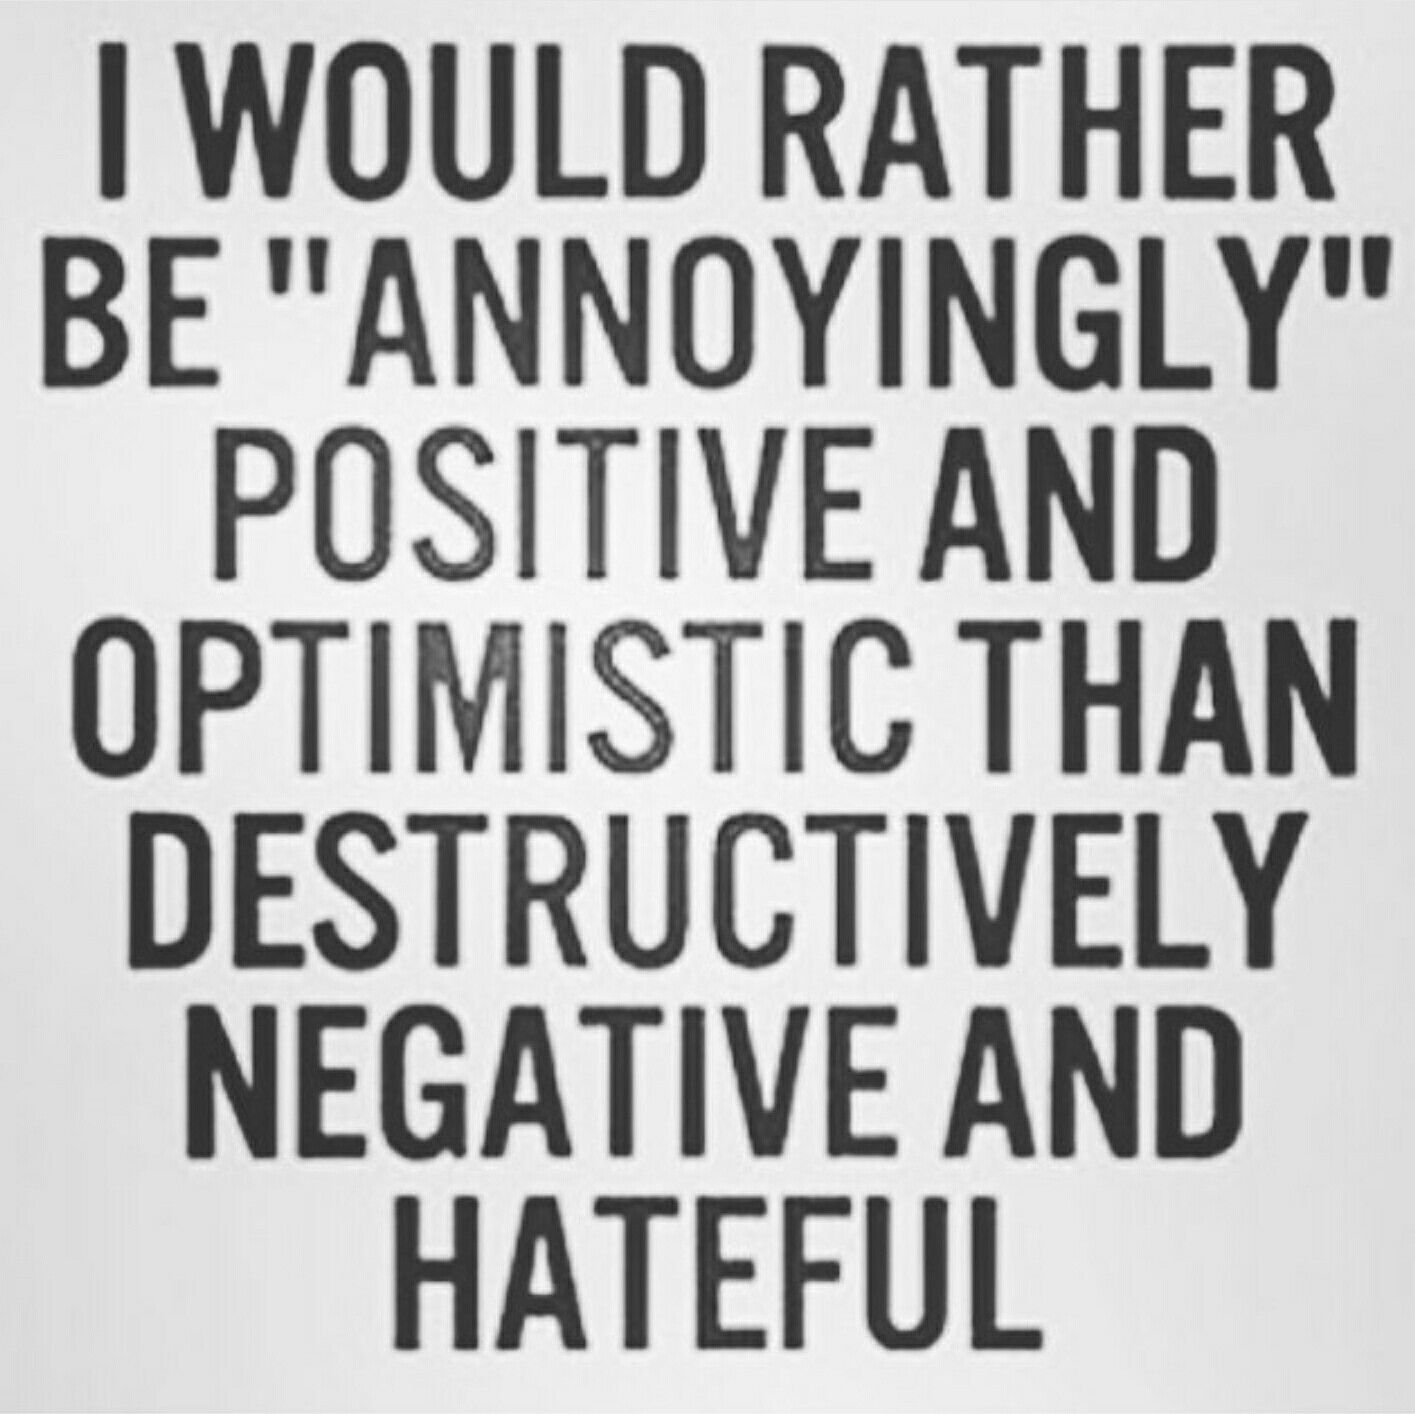 Positive People Quotes Awesome Exactly #positivity #quotes  Quotes  Pinterest  Positivity